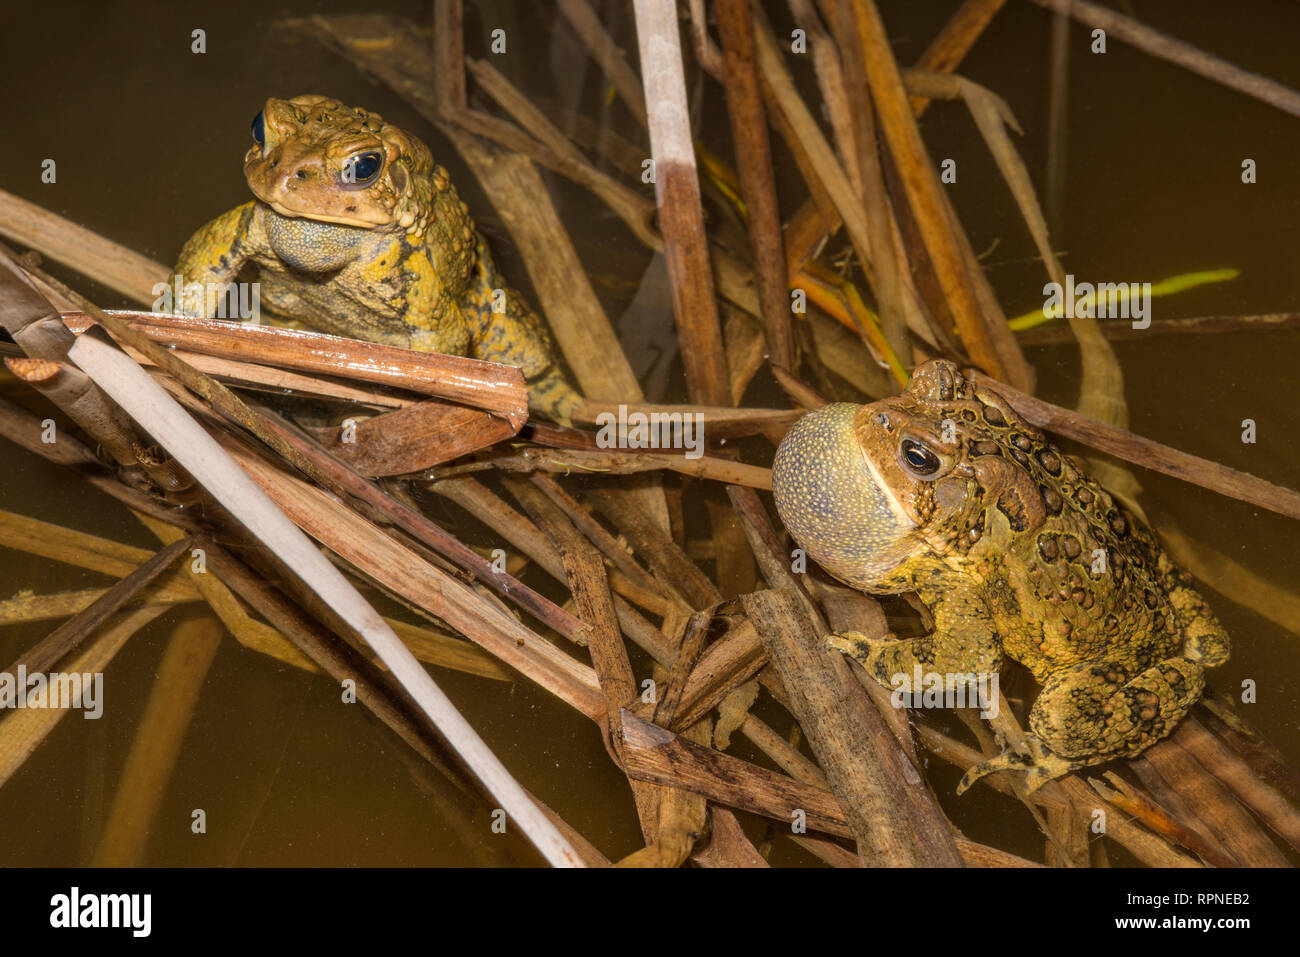 zoology / animals, amphibian (amphibia), Two male American Toads (Bufo americanus) with vocal sacs inf, Additional-Rights-Clearance-Info-Not-Available - Stock Image